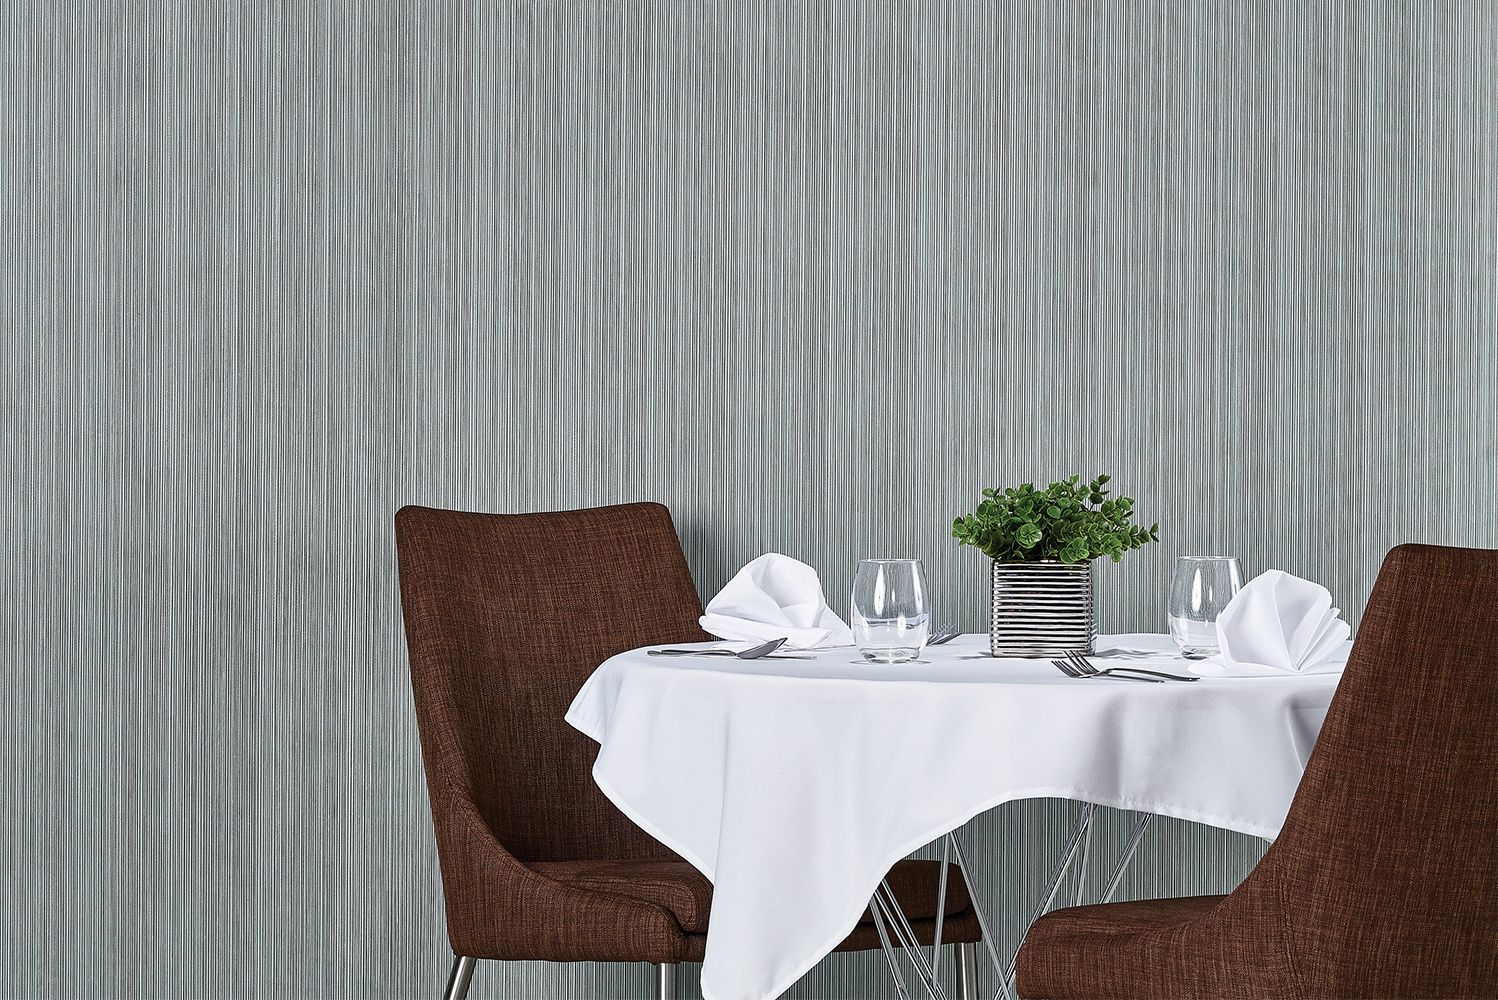 DuPont Electronics & Imaging launched its DuPont Tedlar wallcoverings line, including the Passport collection.